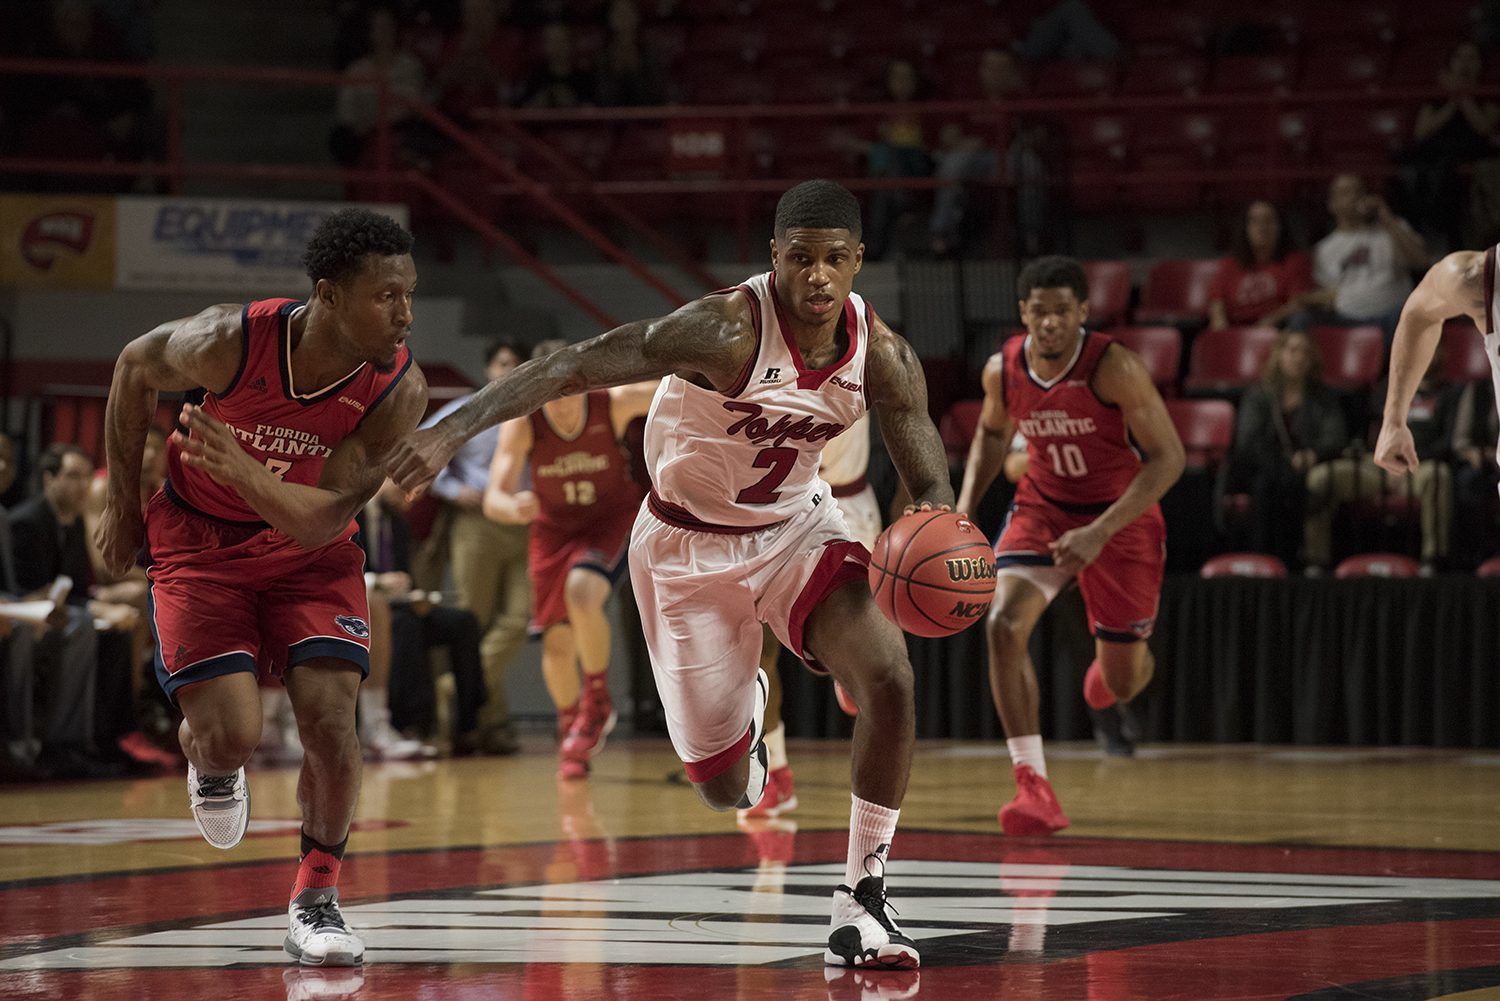 Senior+Aaron+Cosby+drives+the+ball+down+the+court+after+stealing+it+from+FAU+junior+Adonis+Filer+during+the+second+half+of+the+game+on+January+10+in+E.A.+Diddle+Arena.+Jennifer+King%2FHERALD